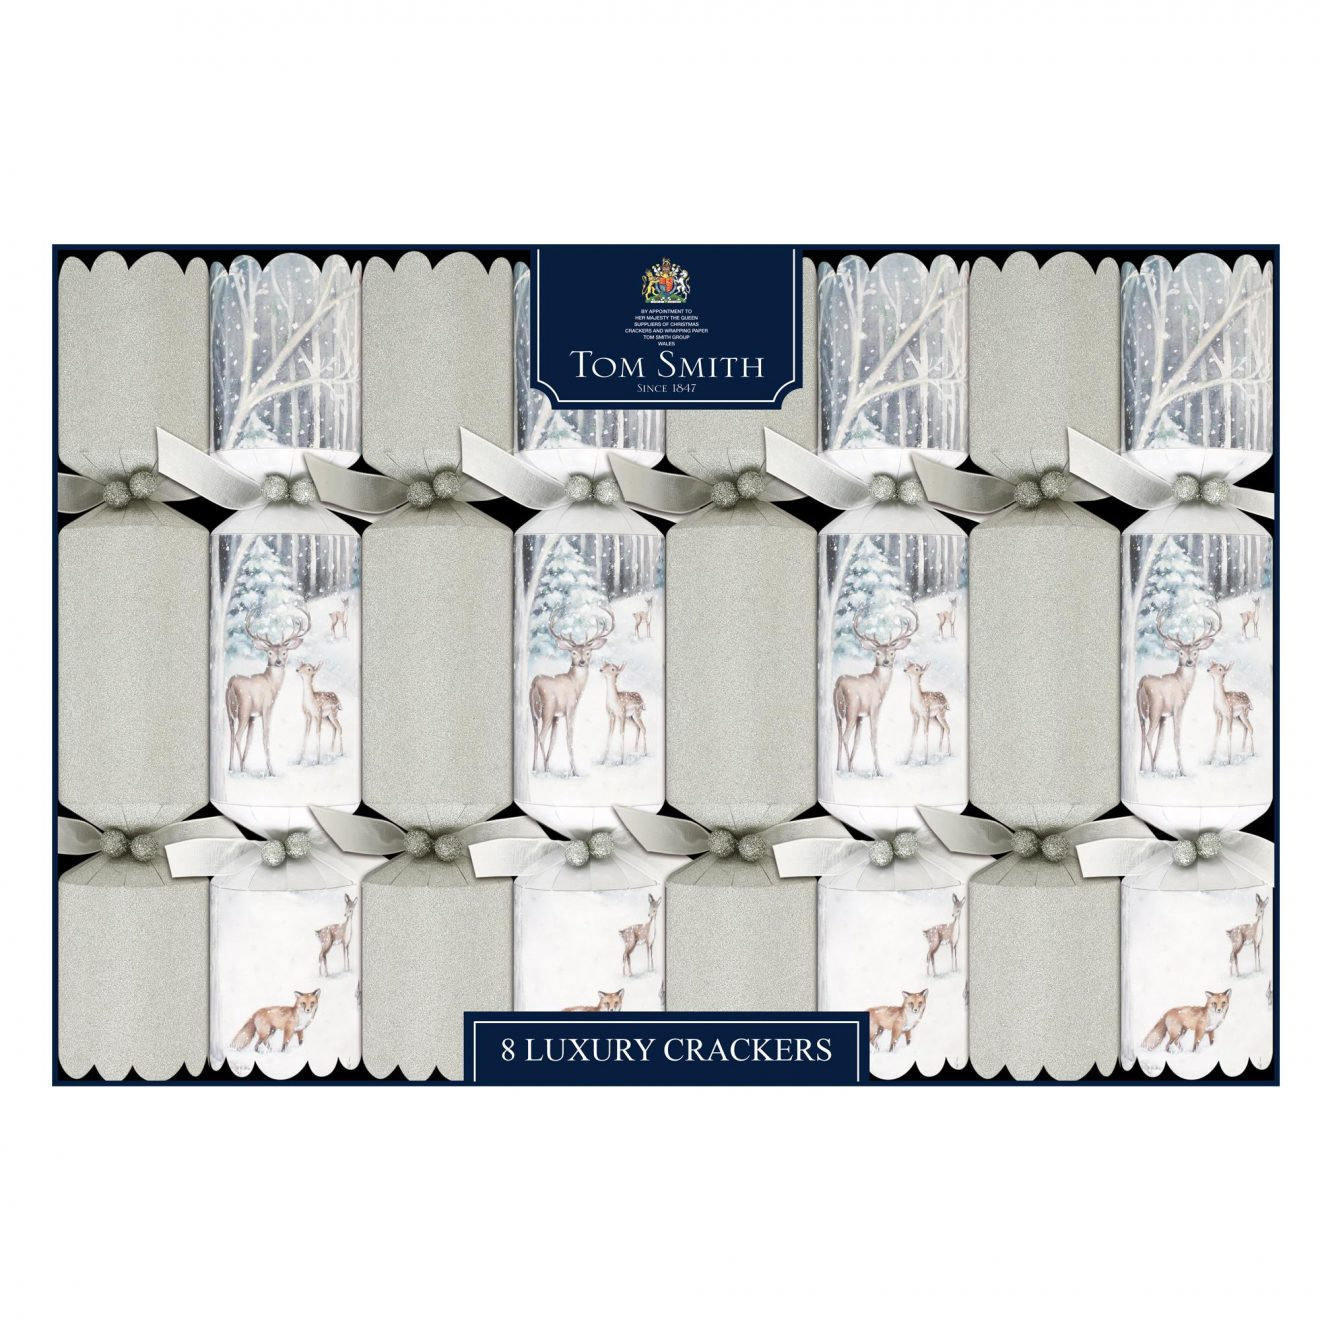 Tom Smith Luxury Crackers Moonlight Forest Glitter Finish 8 pack